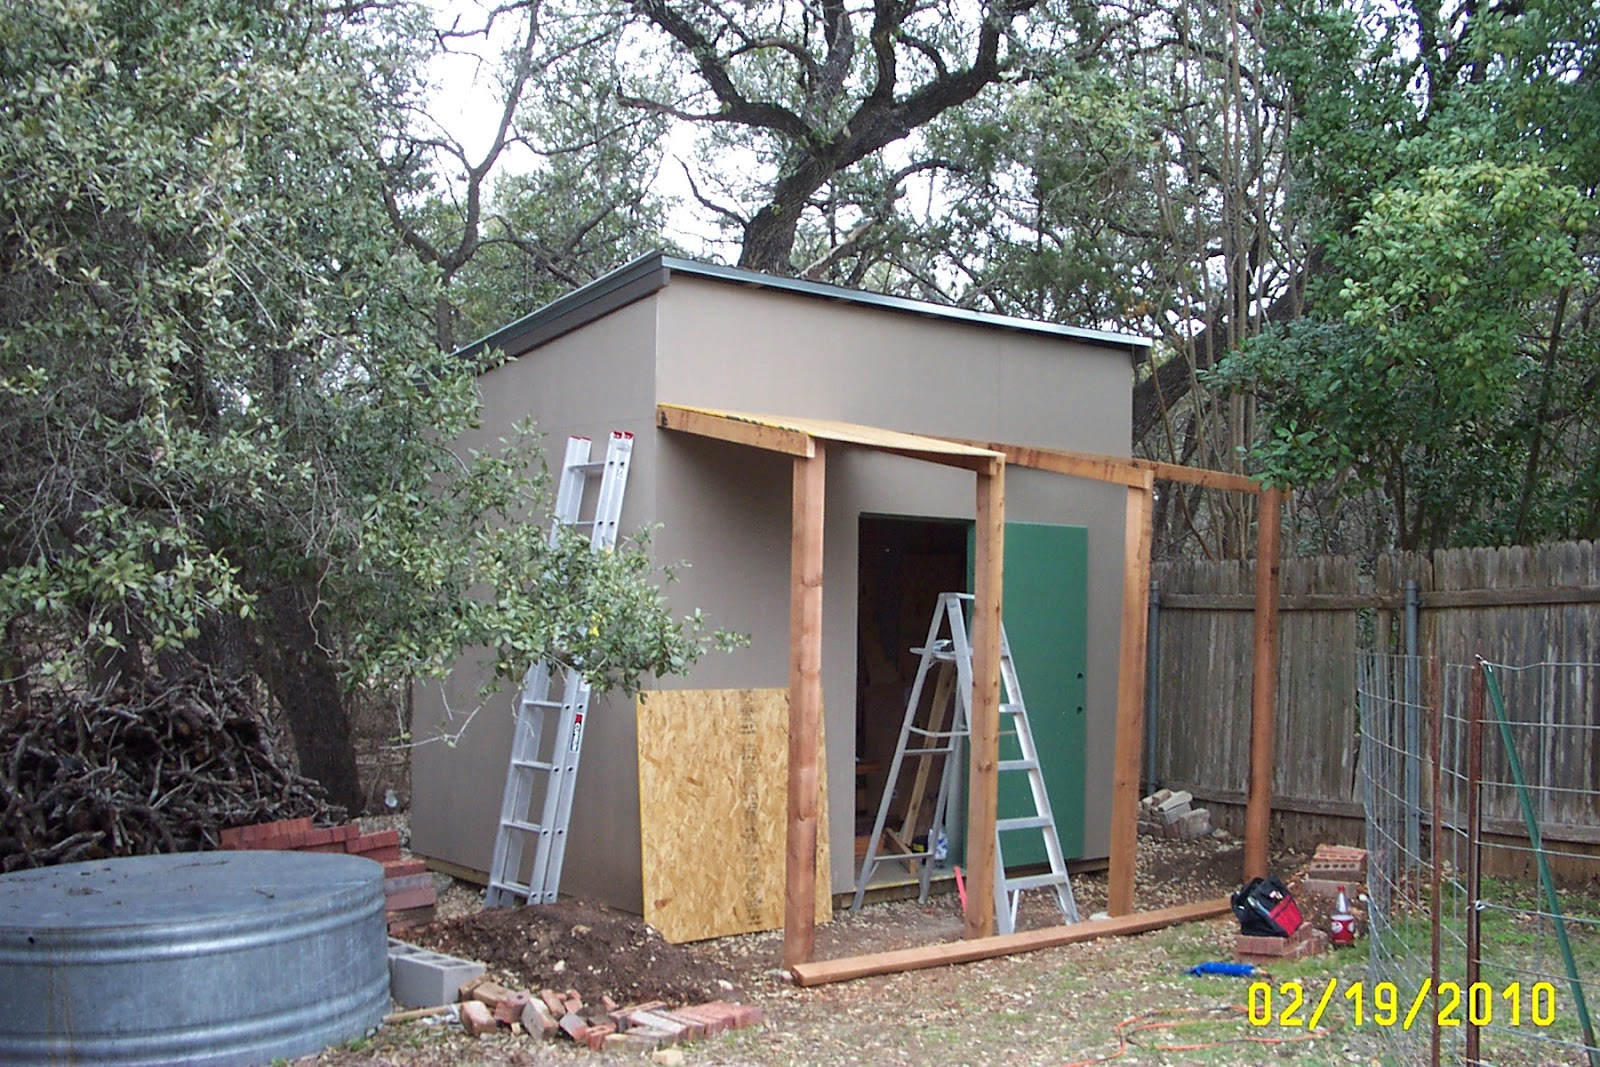 Rock oak deer texas style shed project for Rustic shed with porch